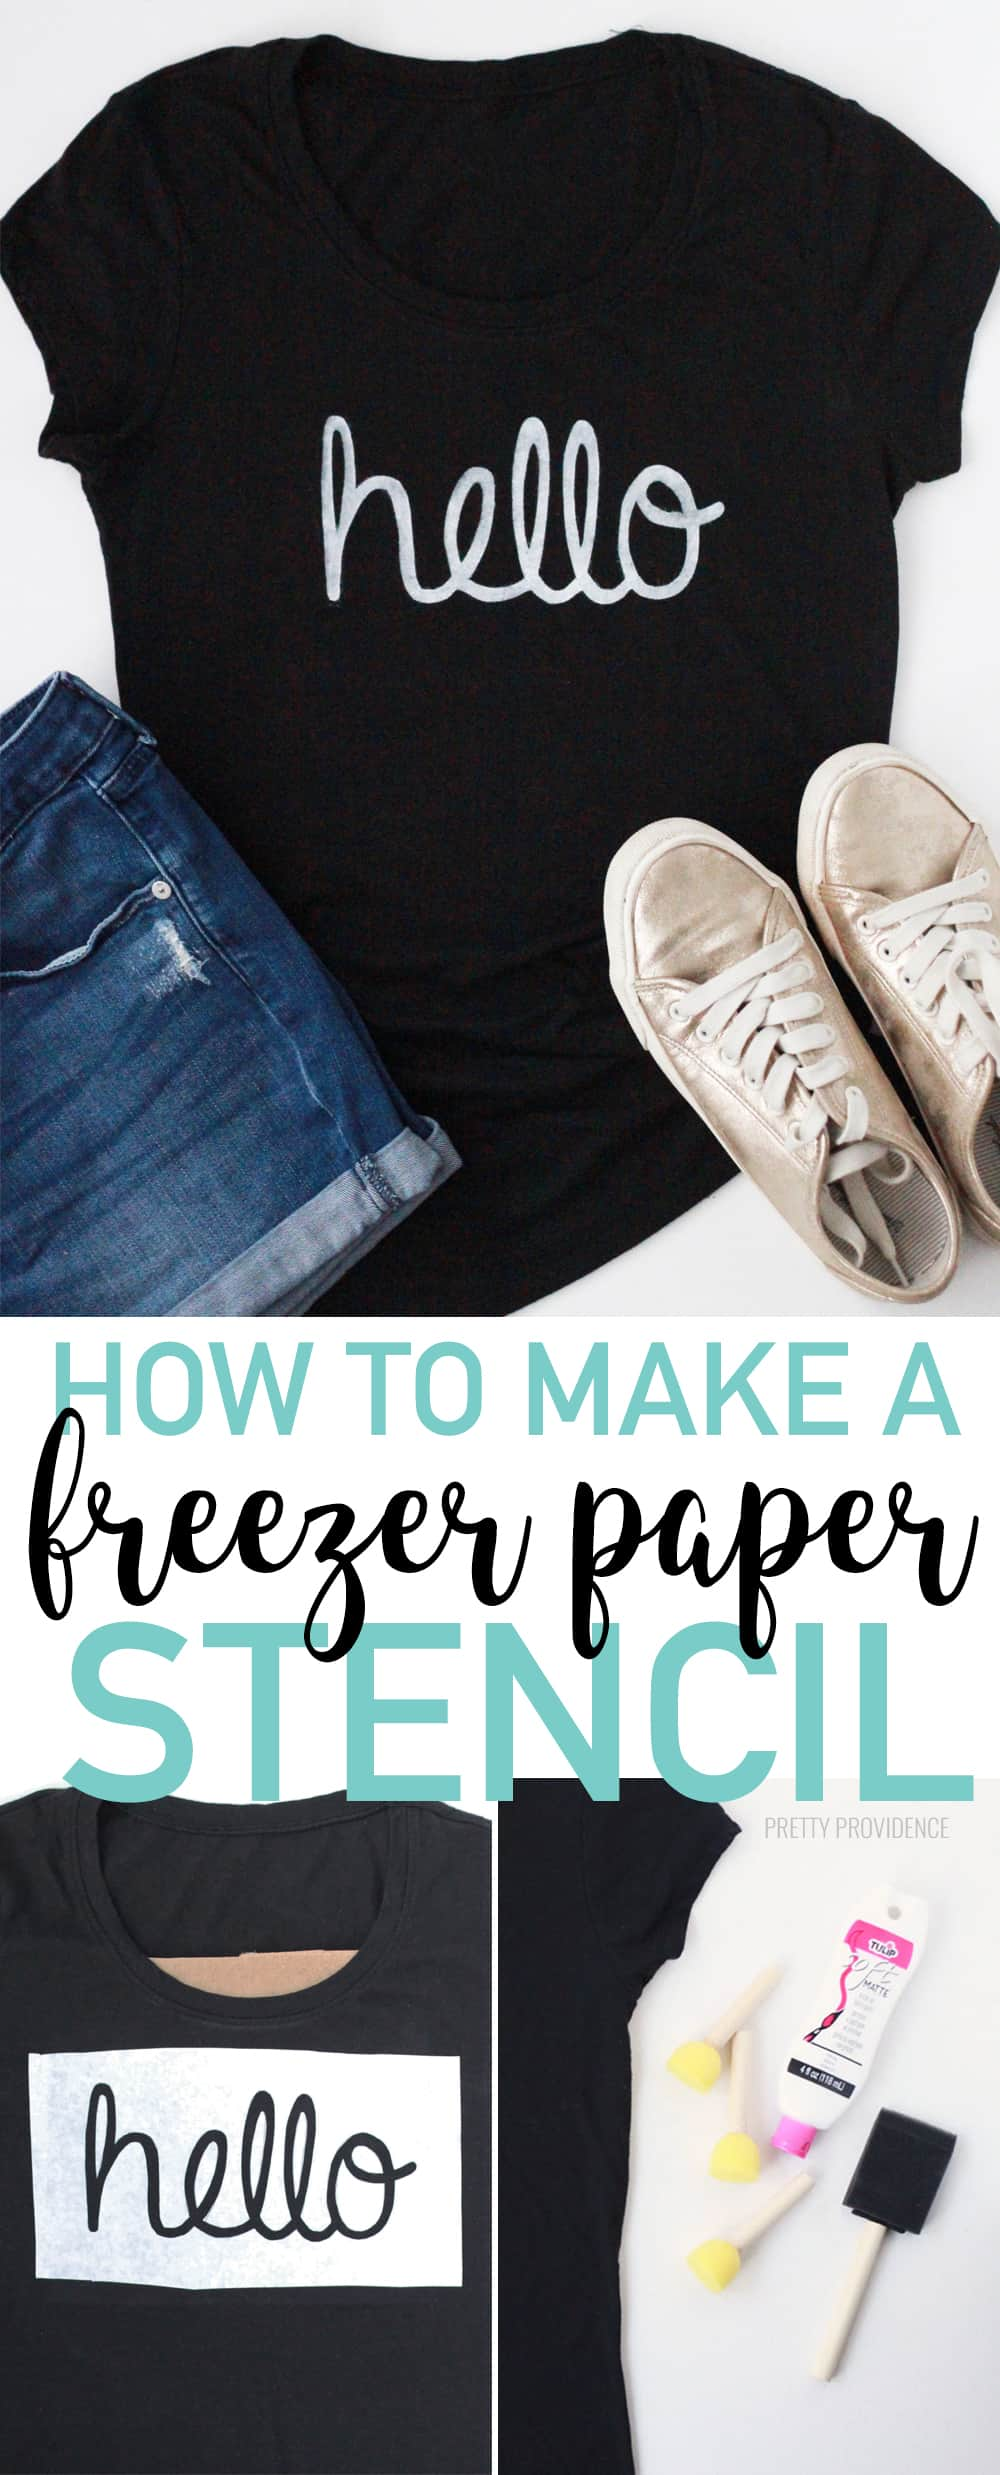 How to make a freezer paper stencil to paint on fabric, like a t-shirt or tote bag. You can also use freezer paper stencil on wood! #stencil #paint #craft #freezerpaperstencil #howto #diy #crafty #craftideas #easycrafts #stencilonwood #stencilonshirt #shirt #tshirt #howtomake #fabricpainting #tulip #fabricpaint #freezerpaper